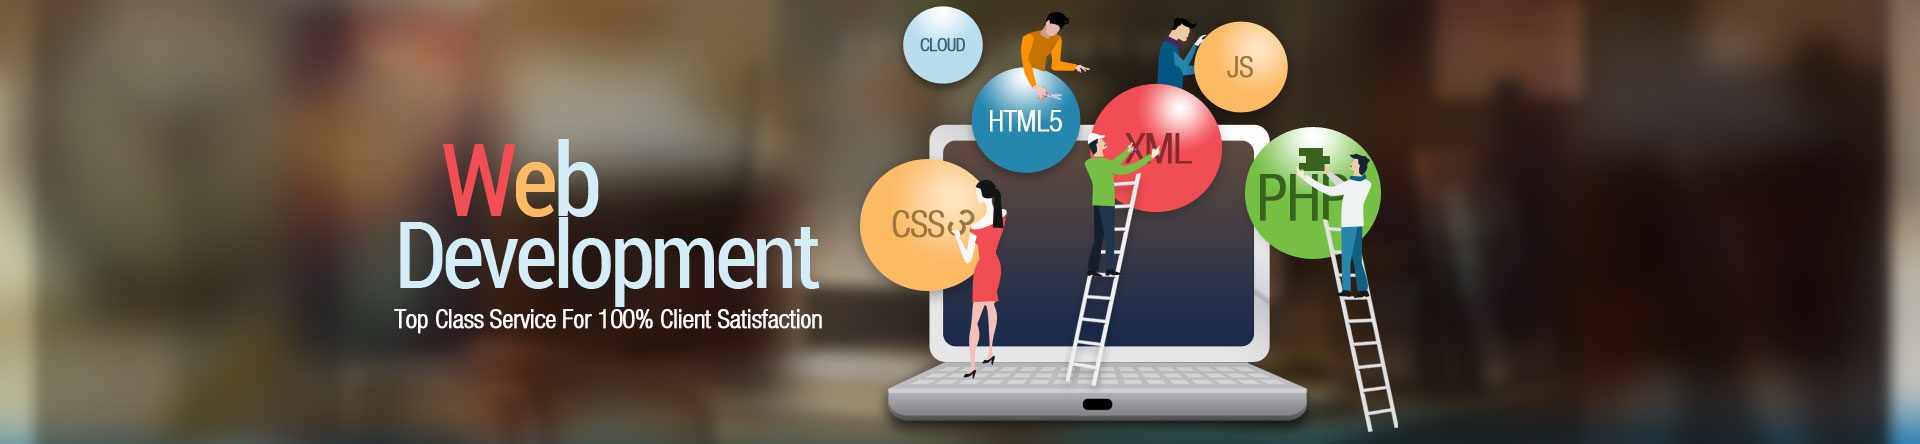 iqlance-web-development